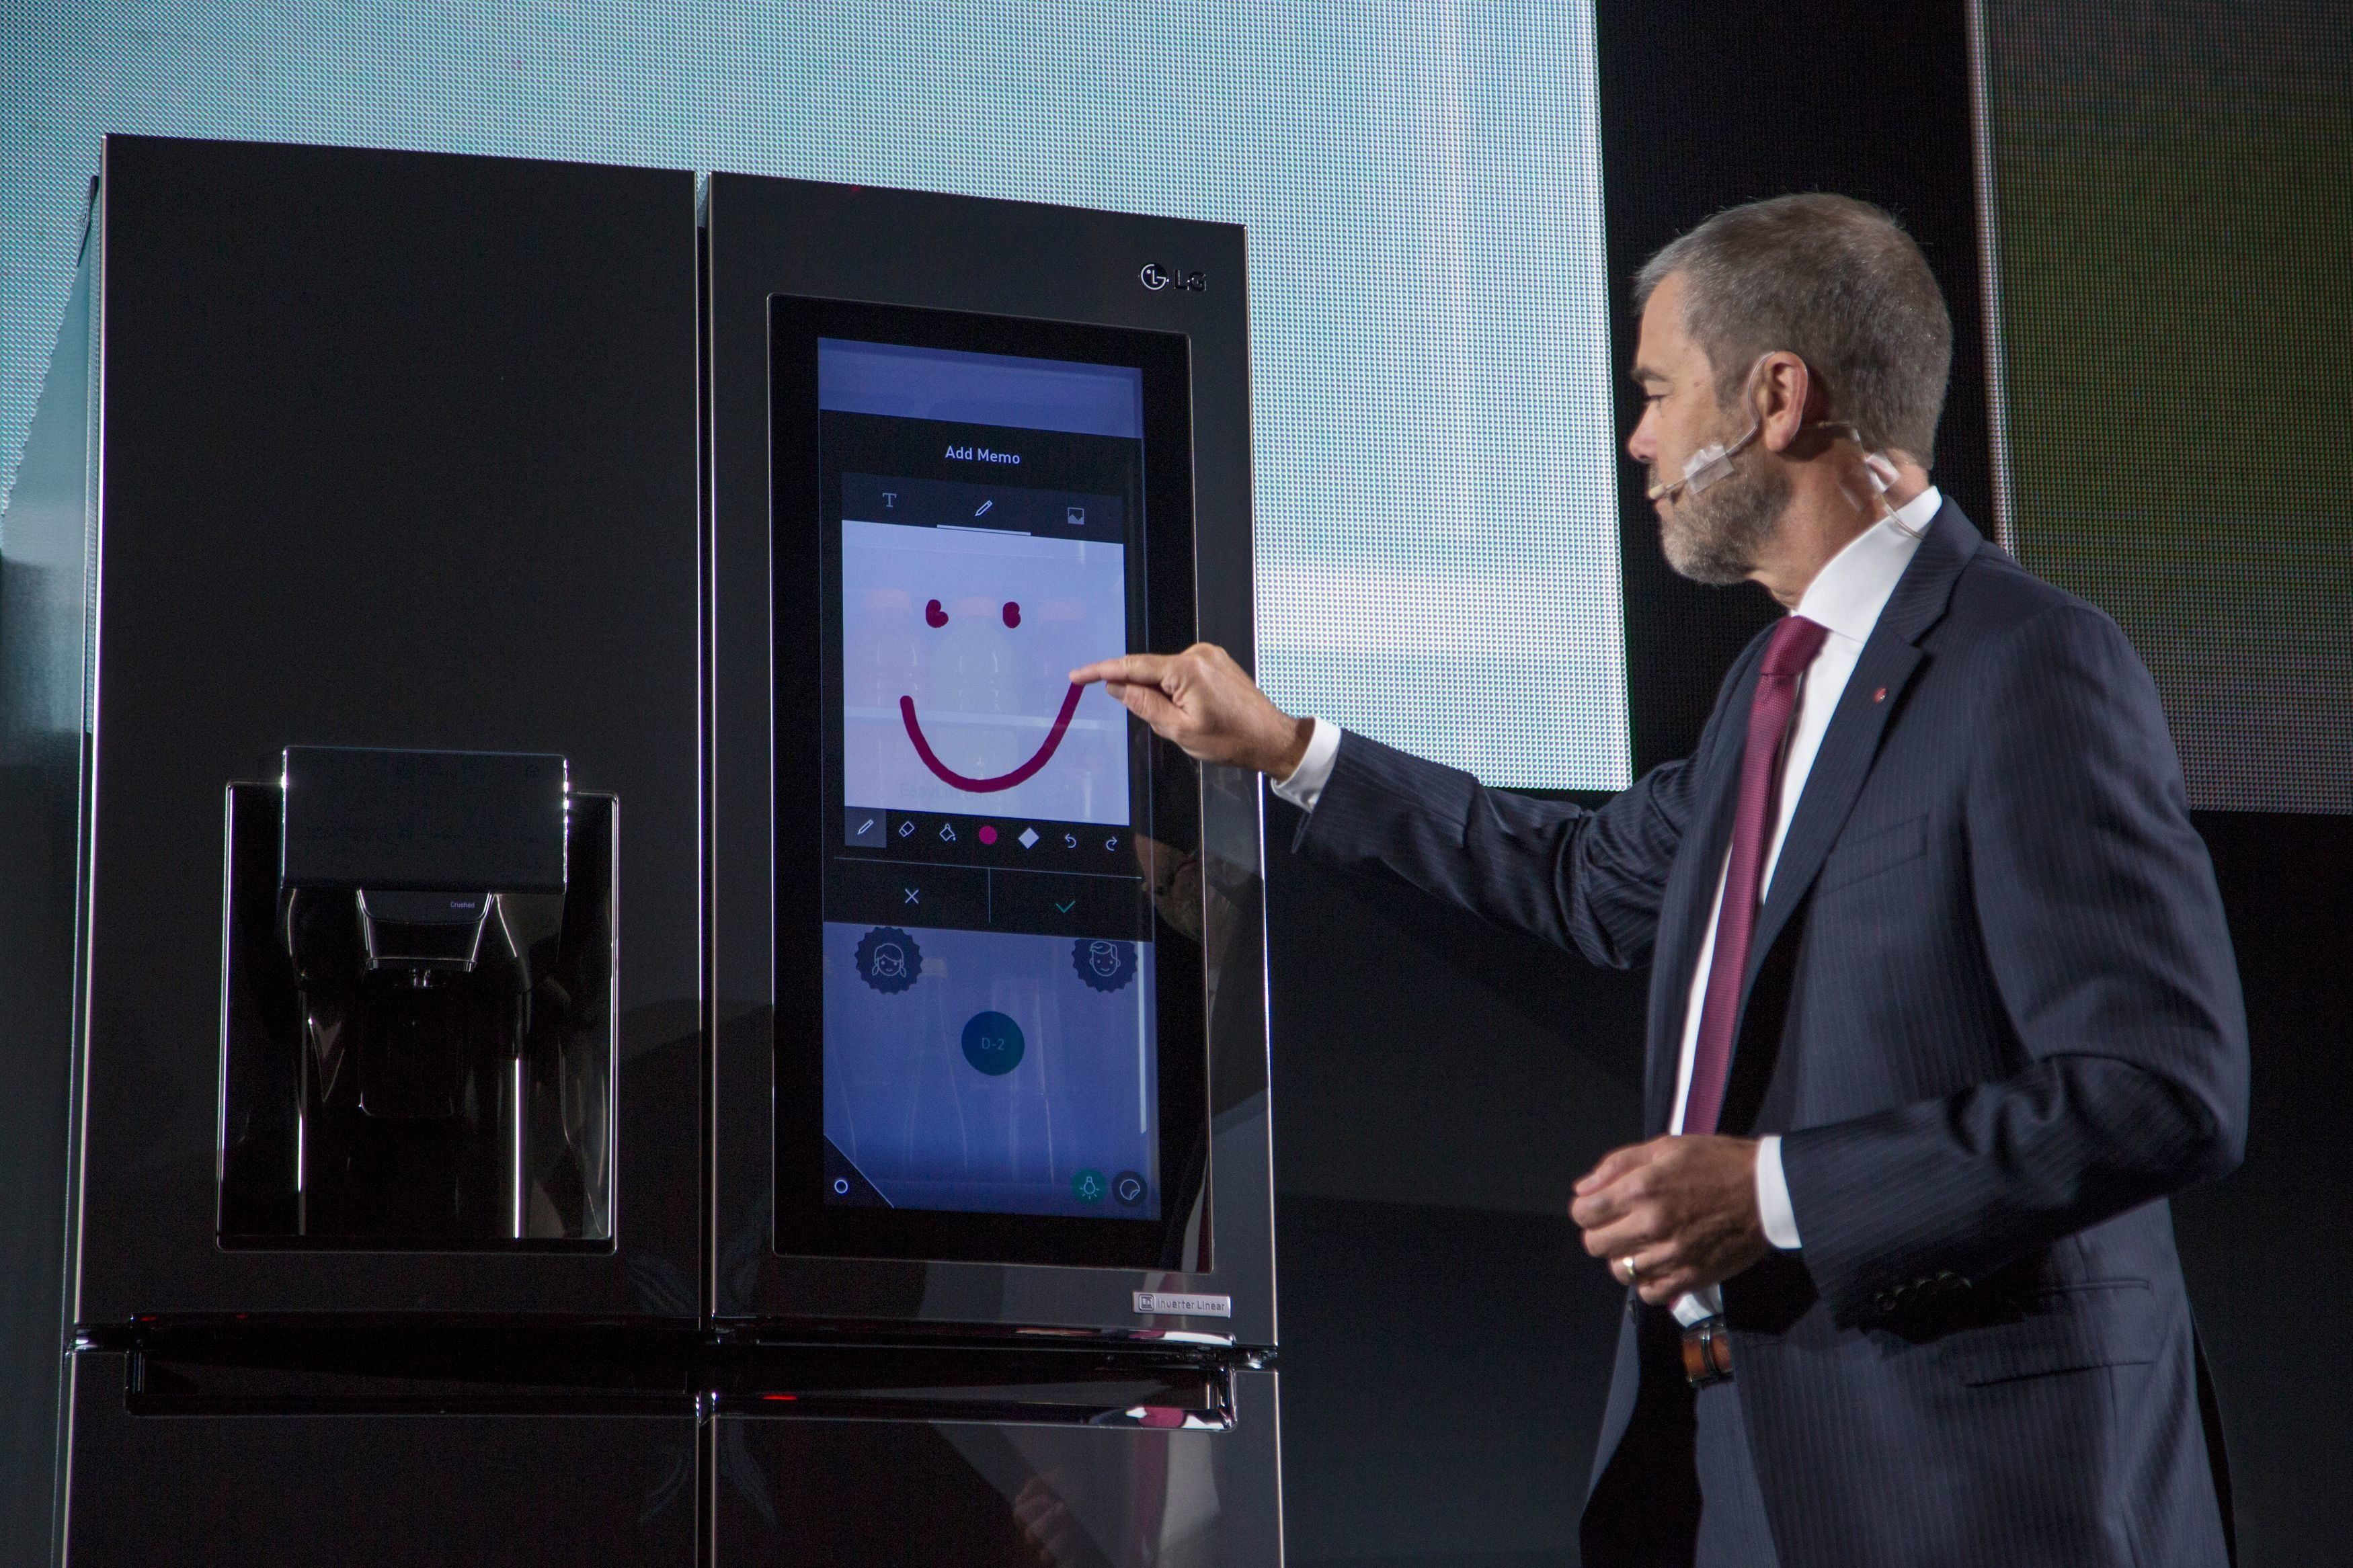 LG Electronics' Vice President of Marketing David VanderWaal presents the LG InstaView Door-in-Door smart refrigerator at the LG press conference at the 2017 Consumer Electronics Show (CES) in Las Vegas, Nevada on January 4, 2017.  / AFP / DAVID MCNEW        (Photo credit should read DAVID MCNEW/AFP/Getty Images)